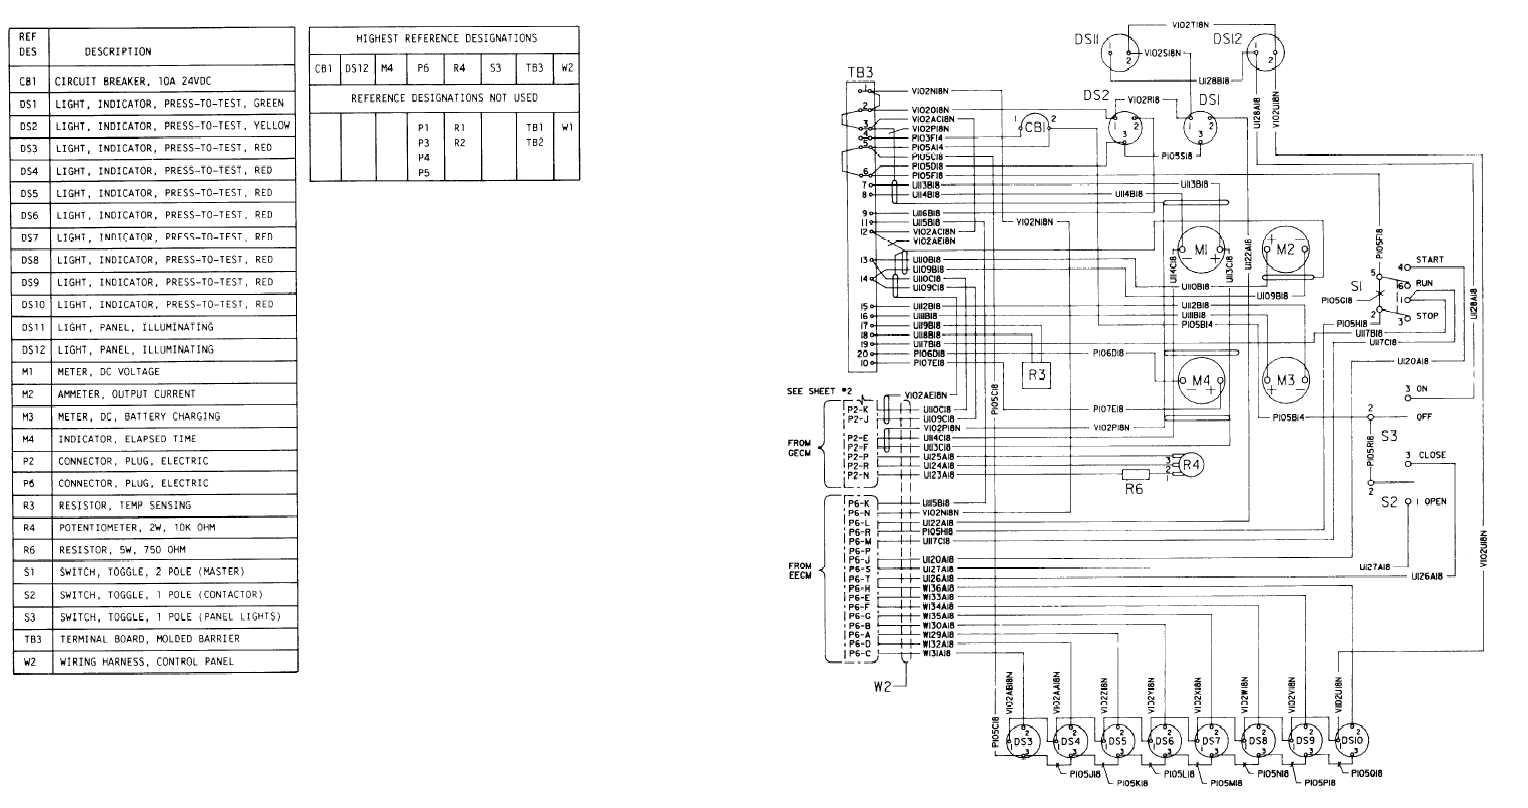 FO-4. Control Panel Wiring Diagram